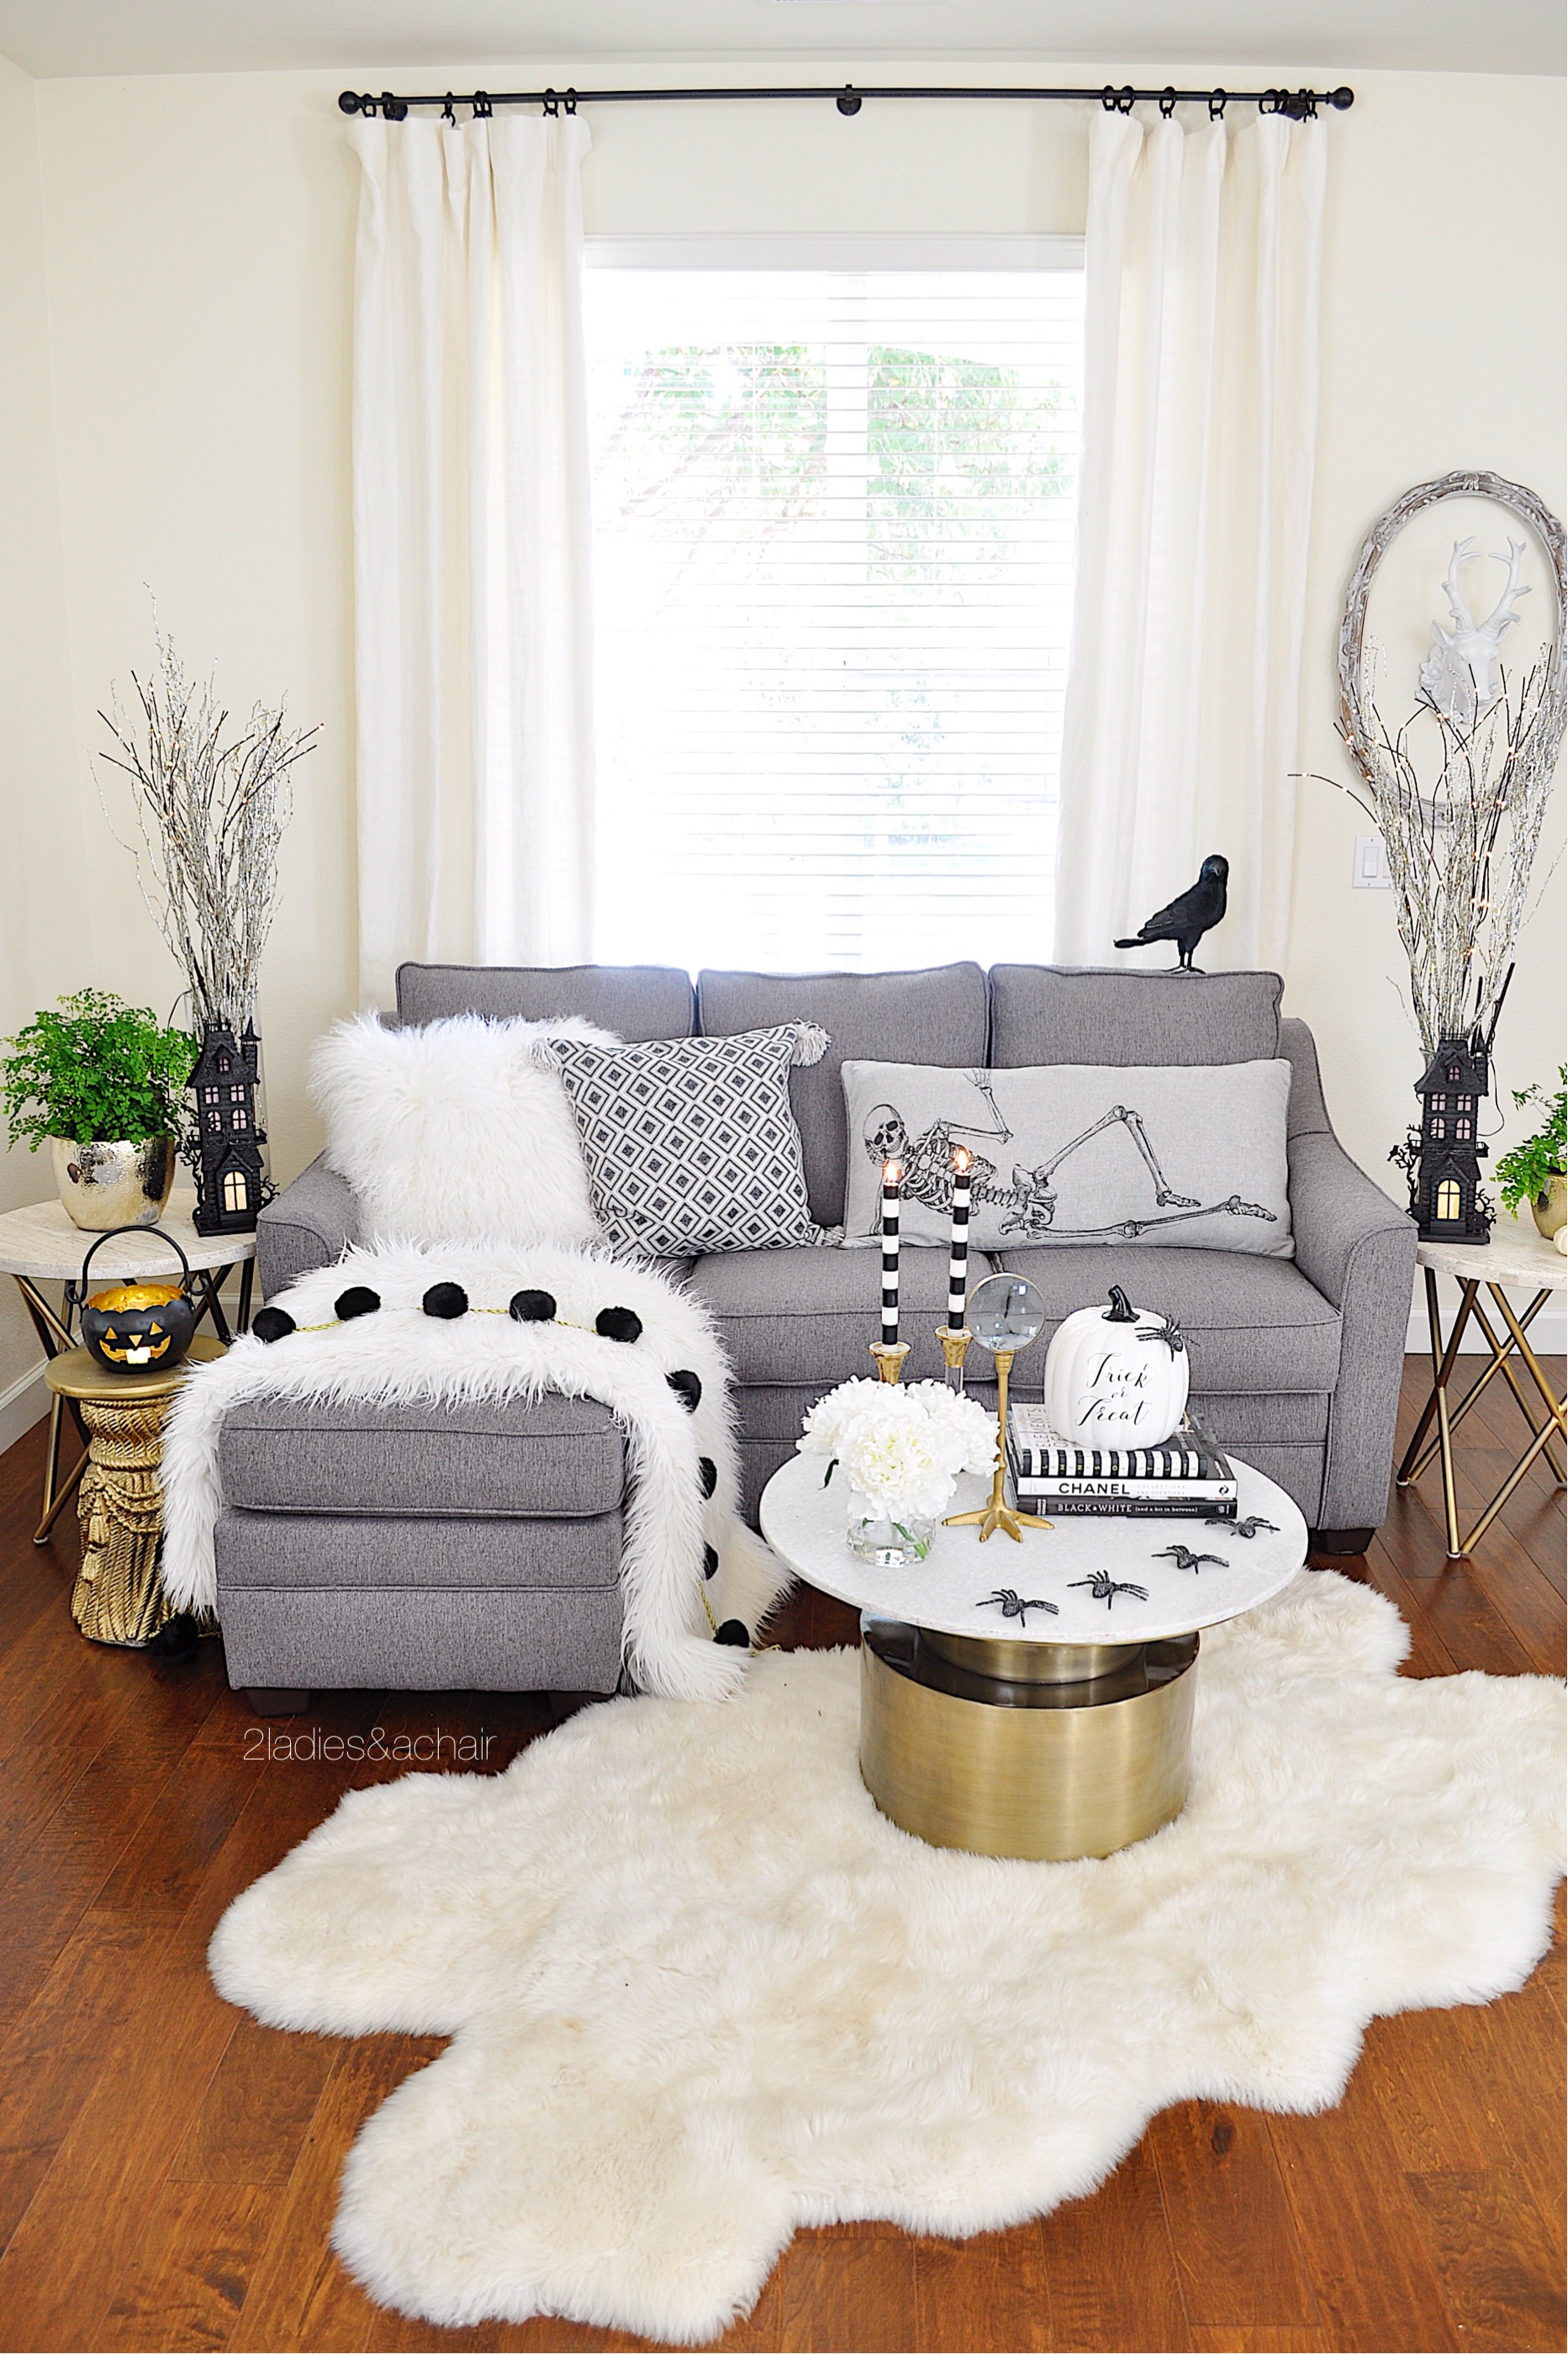 Easy and Spooky Halloween Decorating Ideas — 2 La s & A Chair